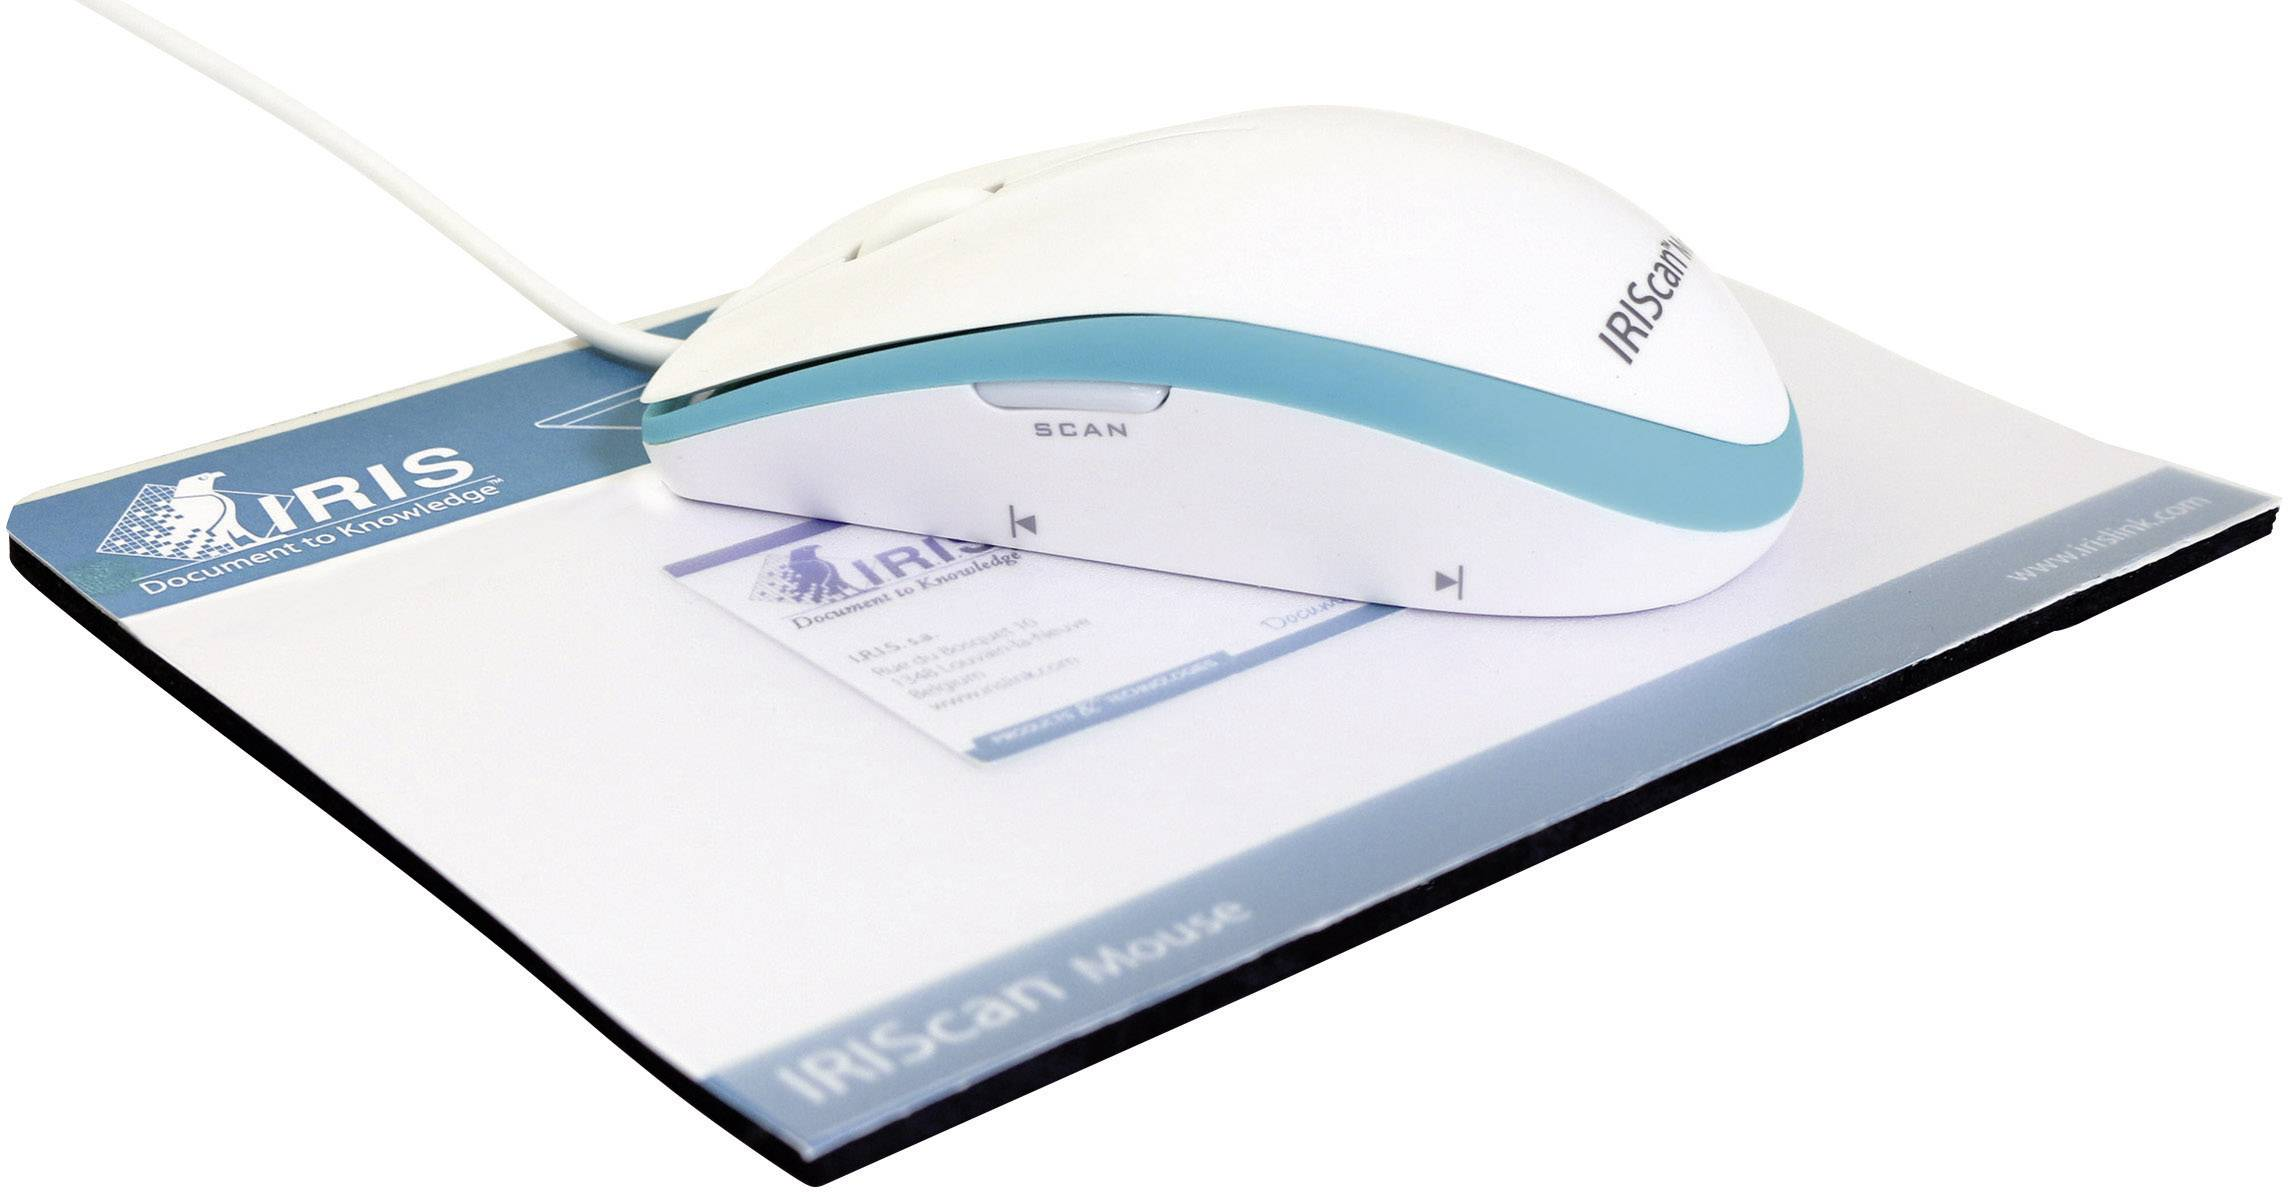 Iris By Canon Iriscan Mouse Executive 2 Maus Scanner A3 300 X 300 Dpi Usb